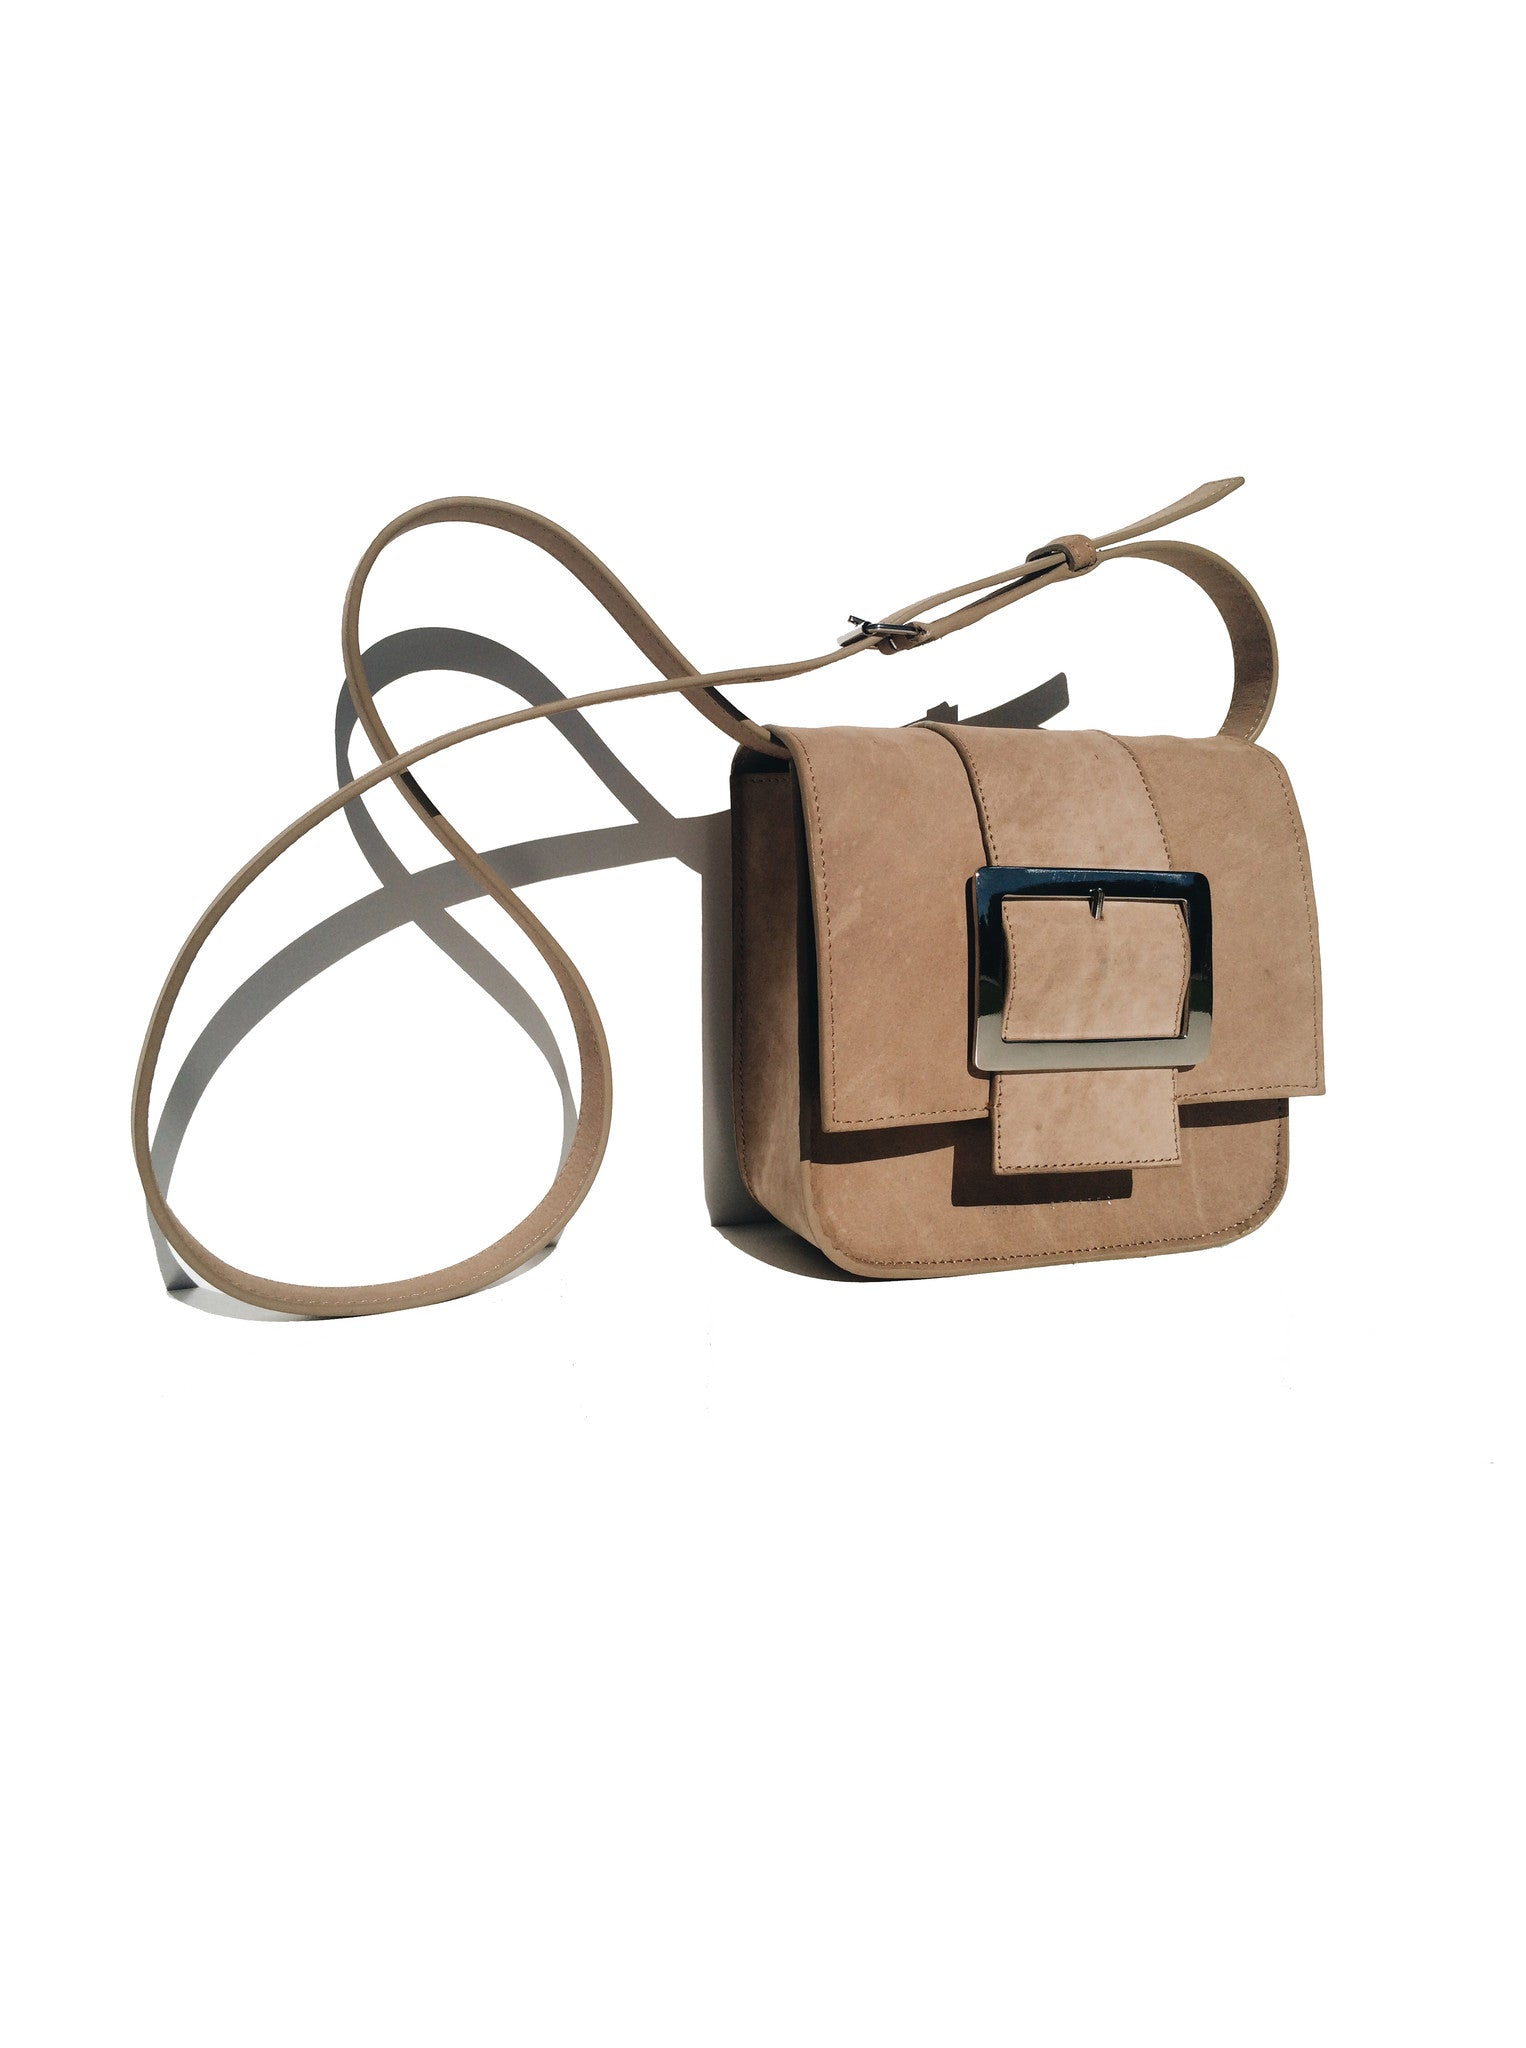 Kai Leather Bag - Adjustable and removable strap